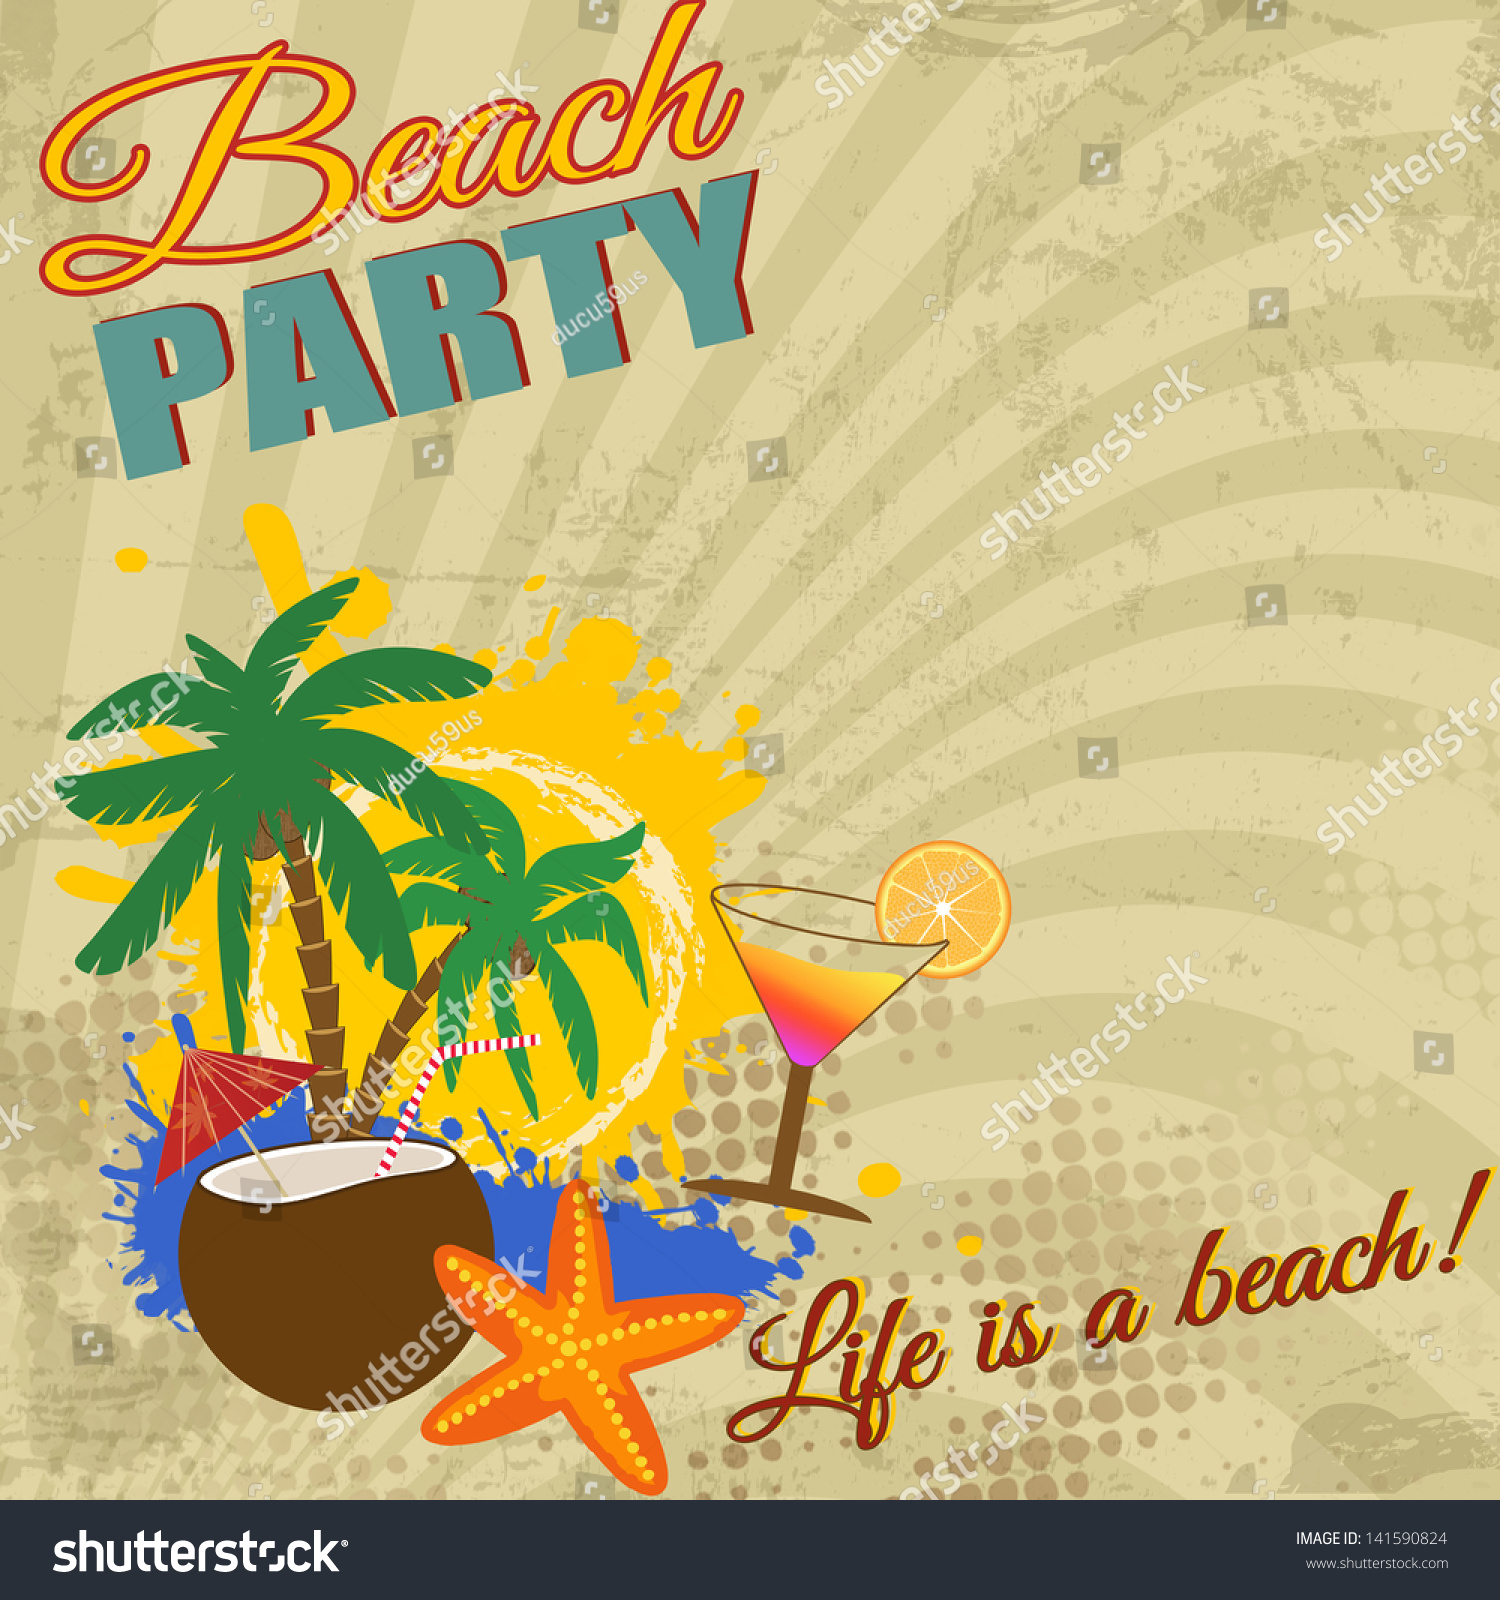 Vintage Beach Background Stock Photo 112981333: Vintage Beach Party Poster On Retro Style, Vector